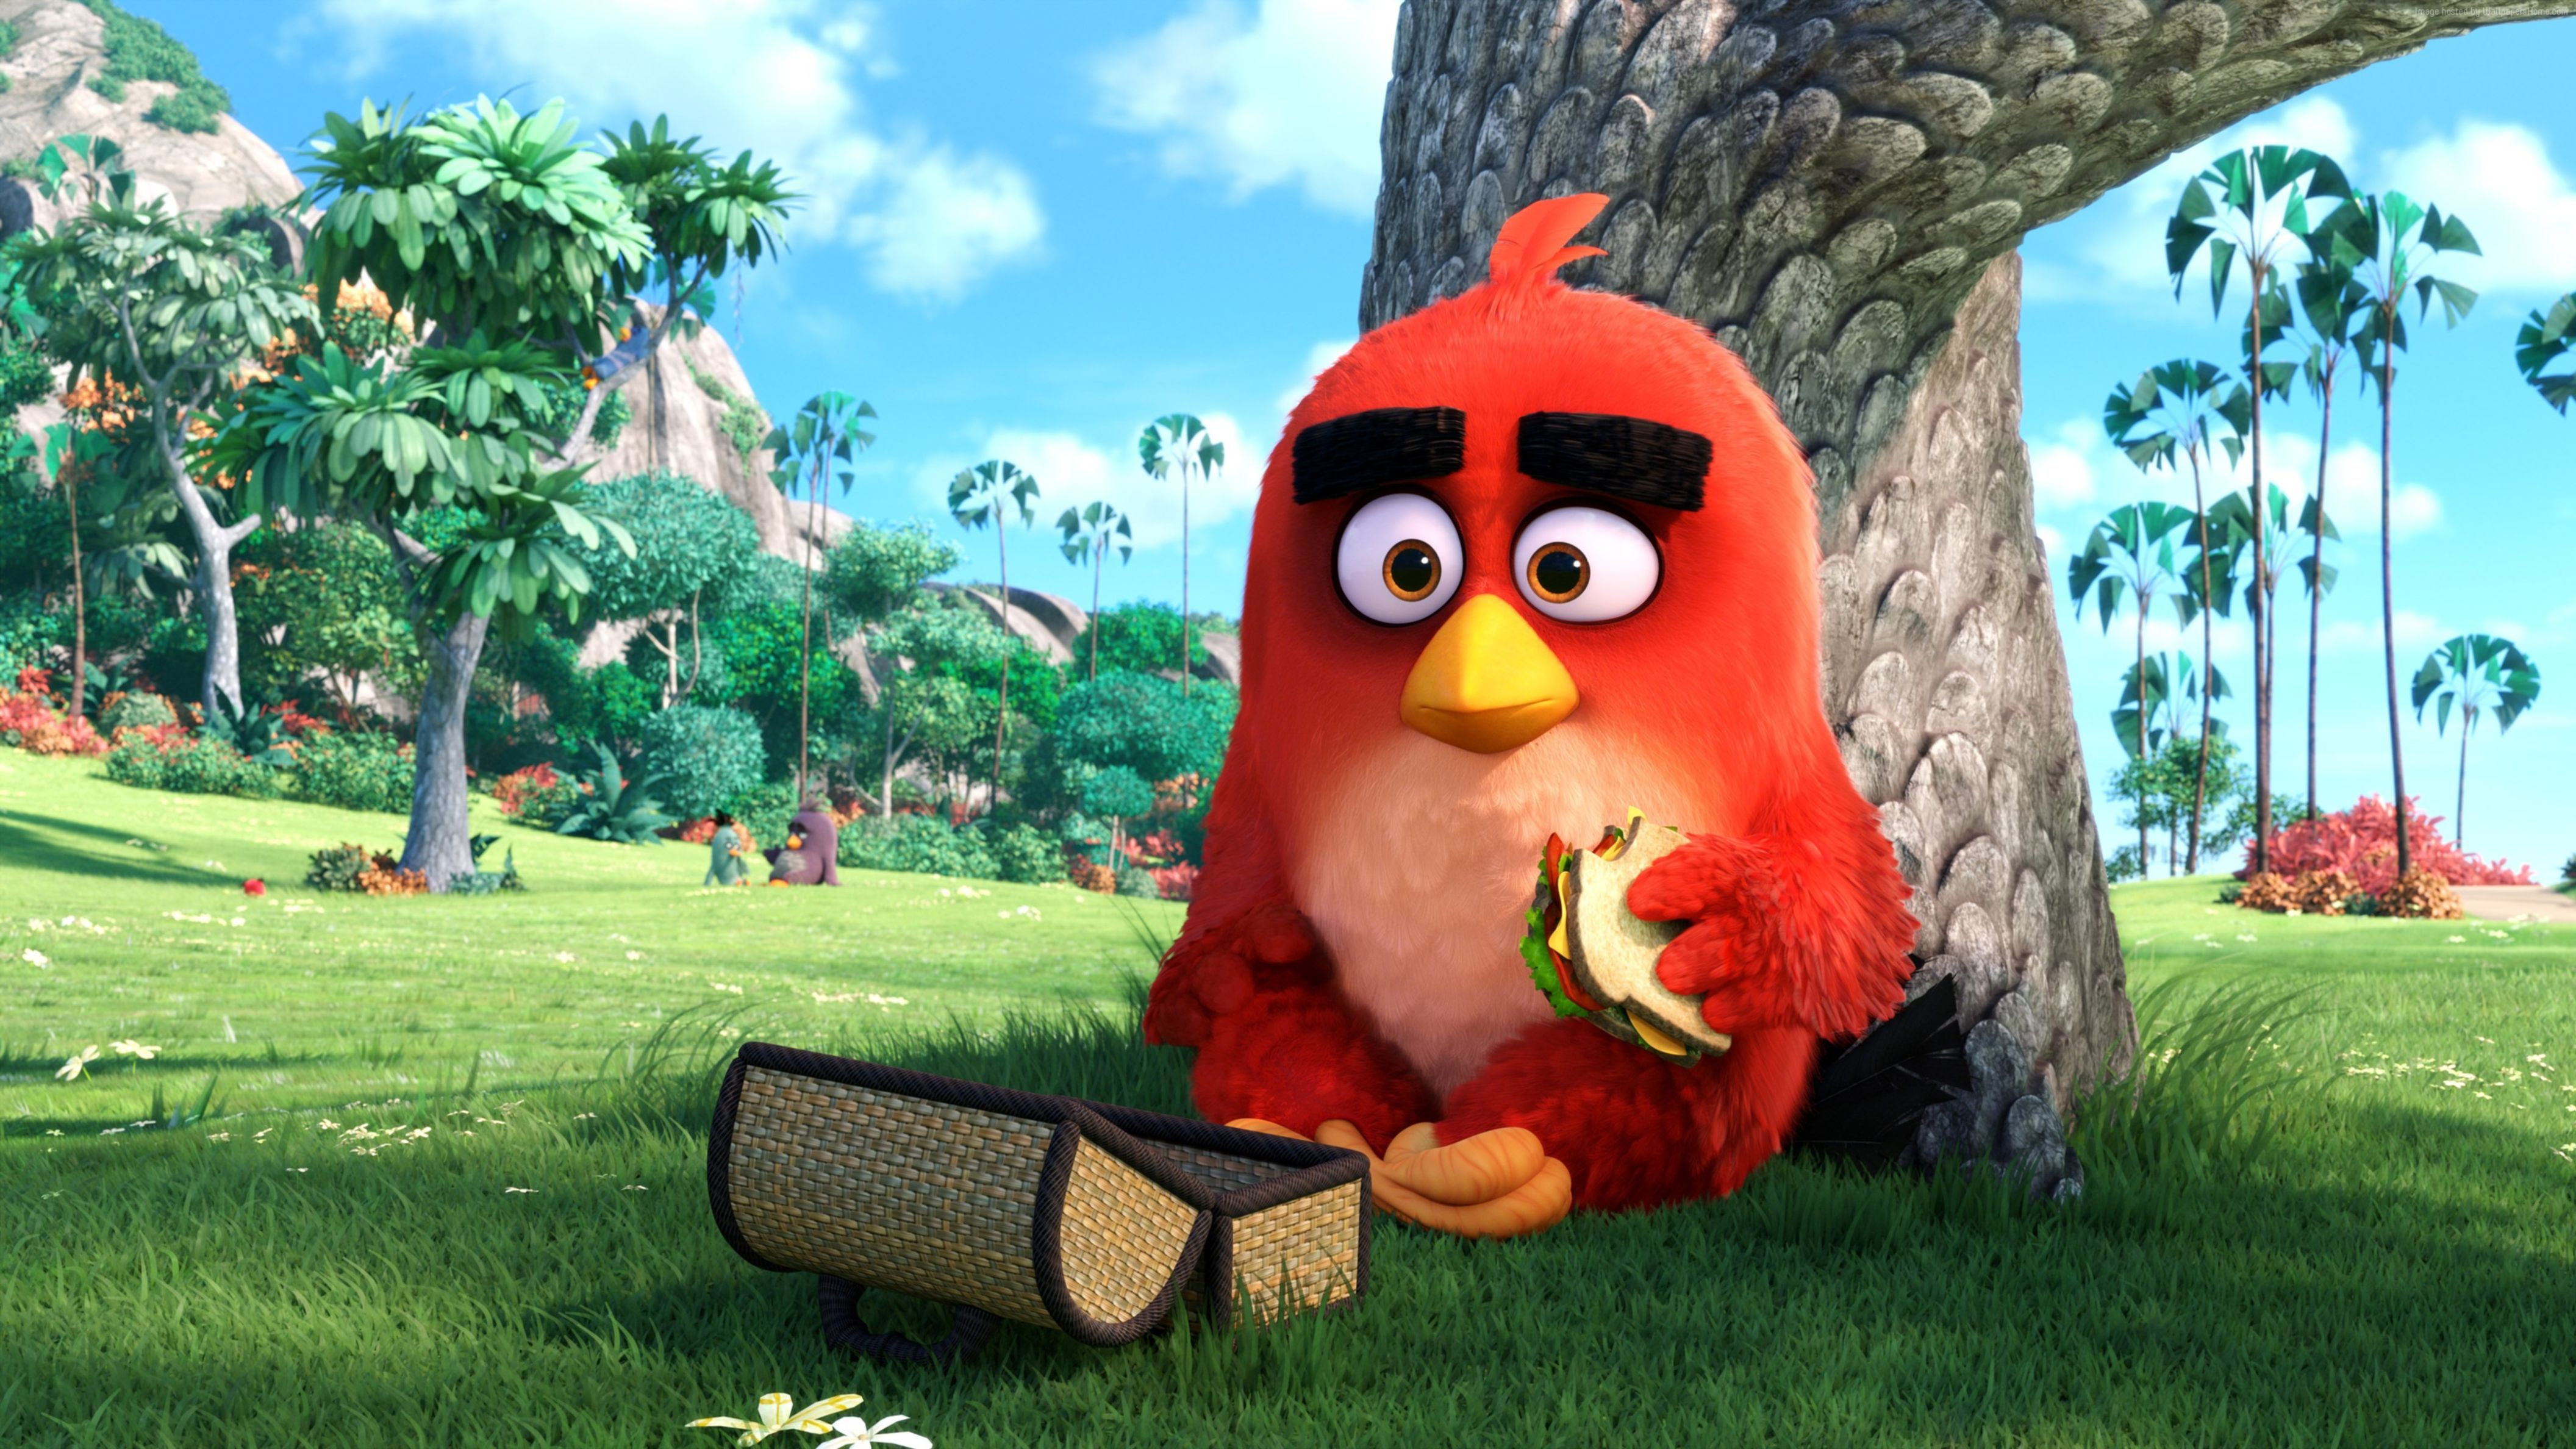 red angry birds movie hd wallpaper: desktop hd wallpaper - download